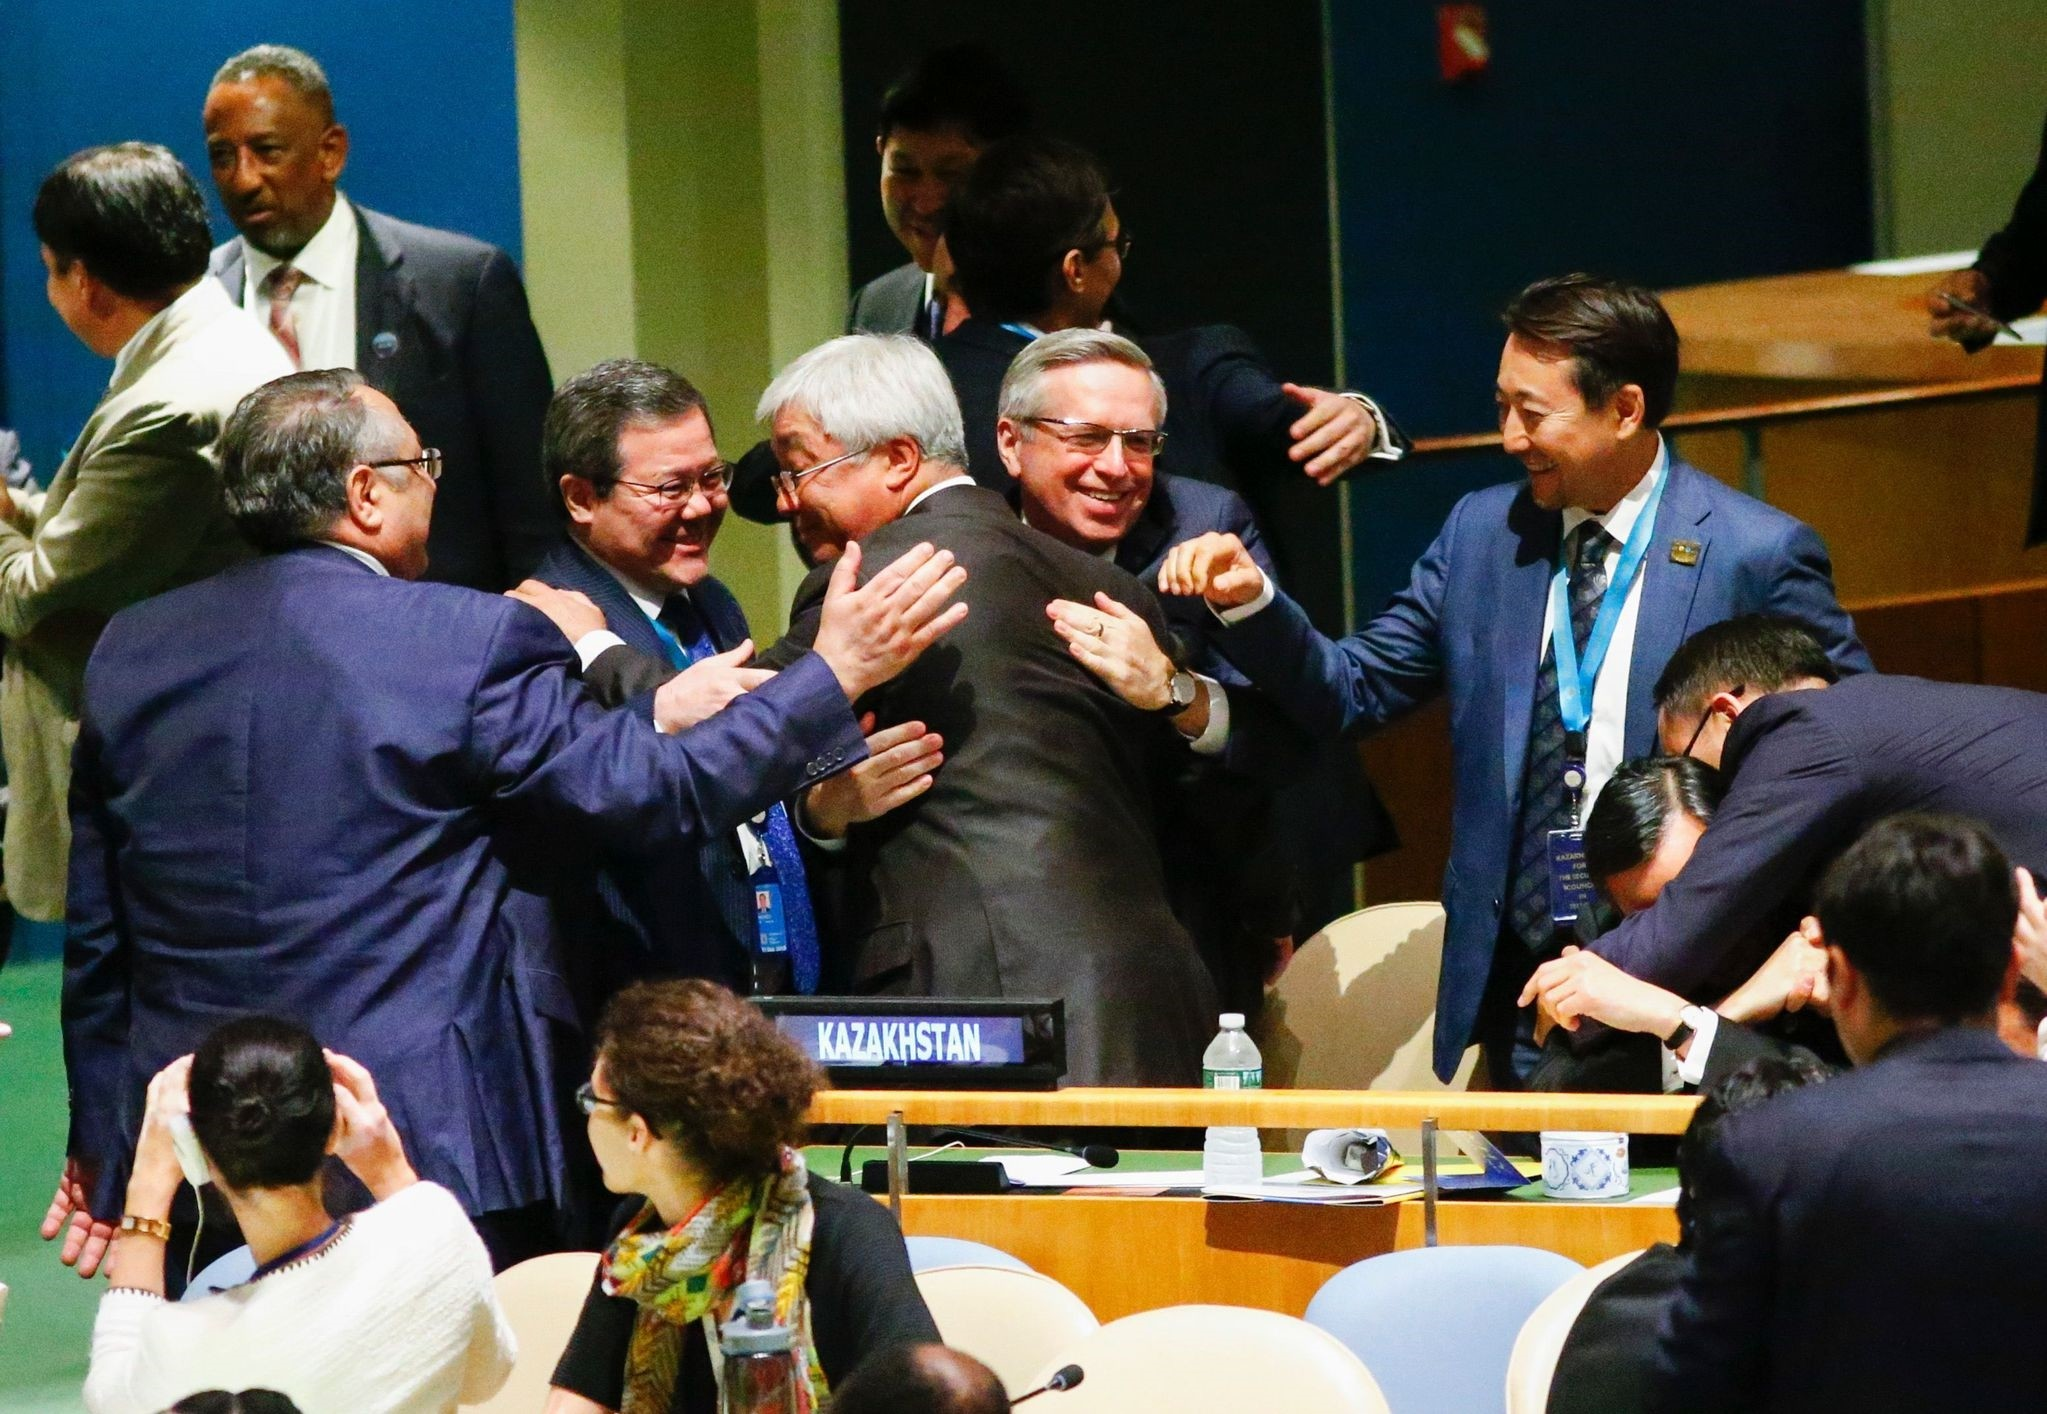 Kazakhstan's FM Erlan Idrissov (C) reacts after Kazakhstan won a seat during the Election of five non-permanent members of the Security Council at the United Nations in New York on June 28 2016. (AFP Photo)